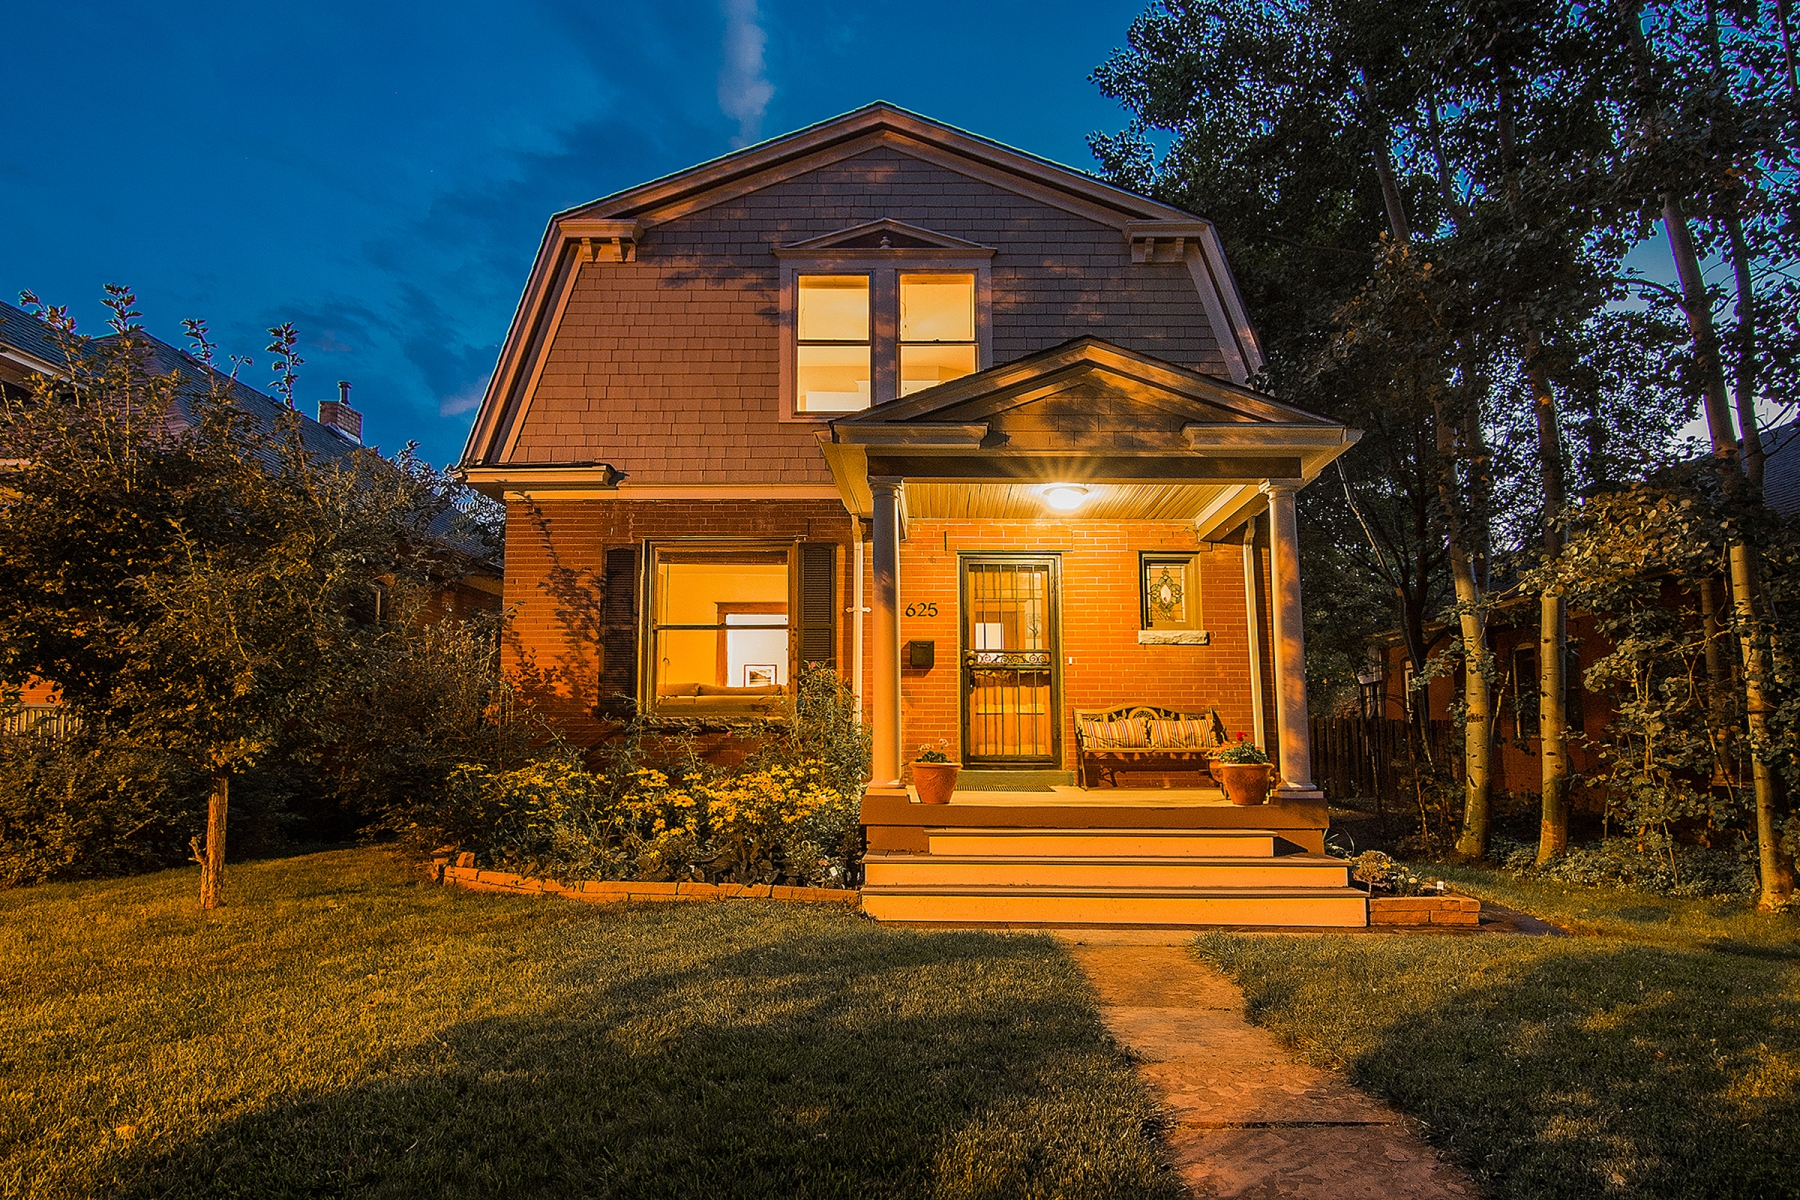 Single Family Home for Sale at Dutch Colonial in Excellent Block of Washington Park West 625 South Washington Street Washington Park West, Denver, Colorado 80209 United States